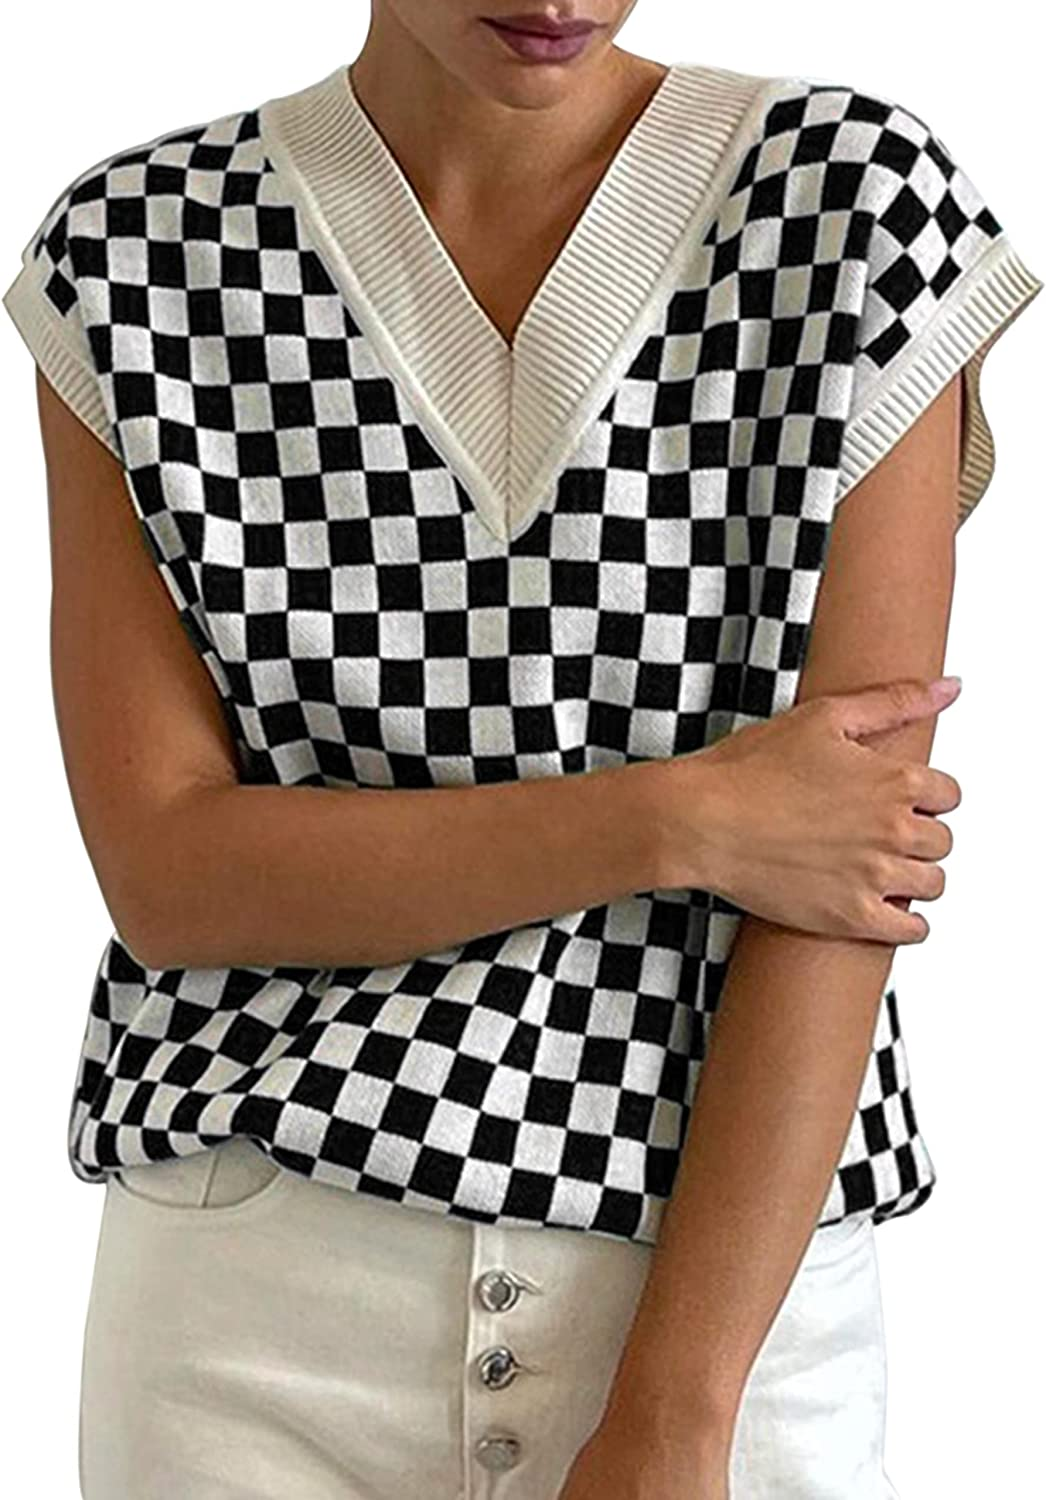 MISSACTIVER Women Y2K Oversized Plaid Pattern Knitted Sweater Vest V Neck Sleeveless Colorblock Pullover Knitwear Tank Top